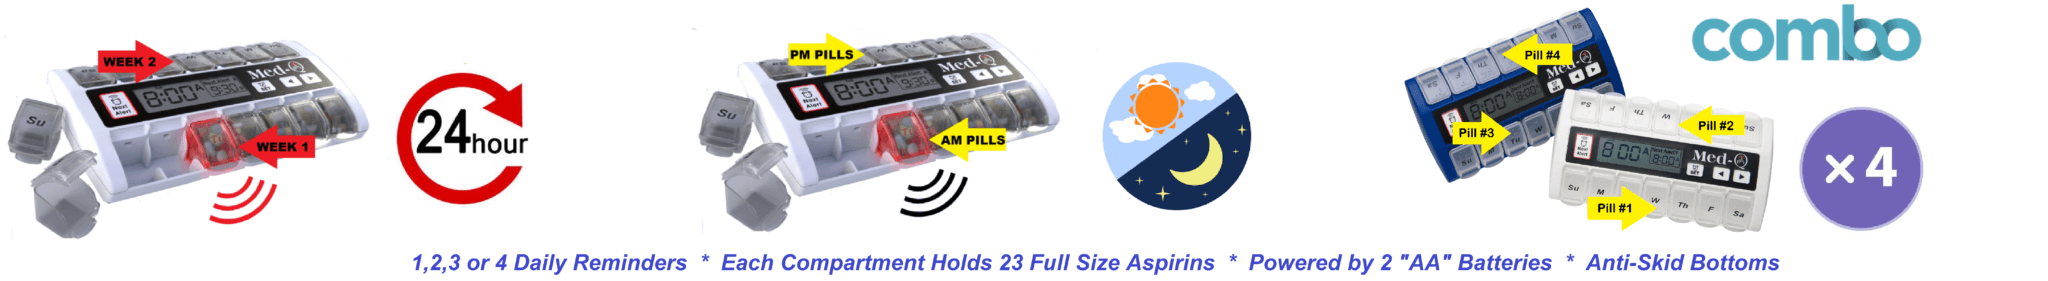 med-q pill organizer with alarms